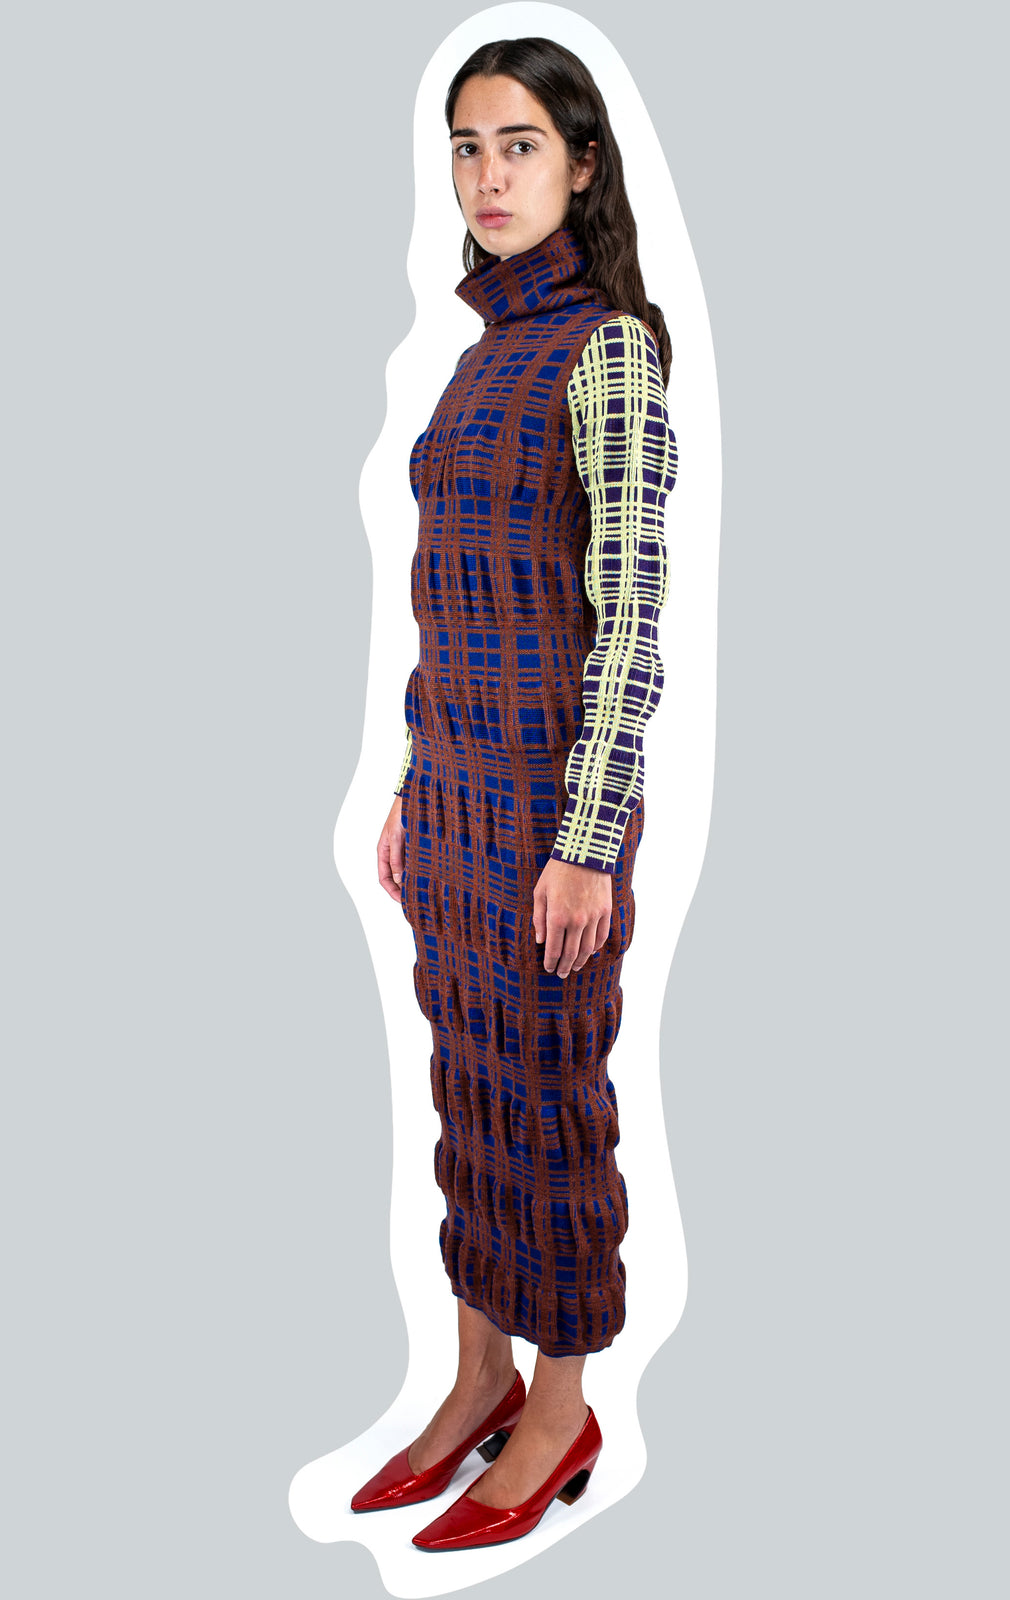 KIKO KOSTADINOV RIBBON TARTAN KNIT COLUMN DRESS AW20